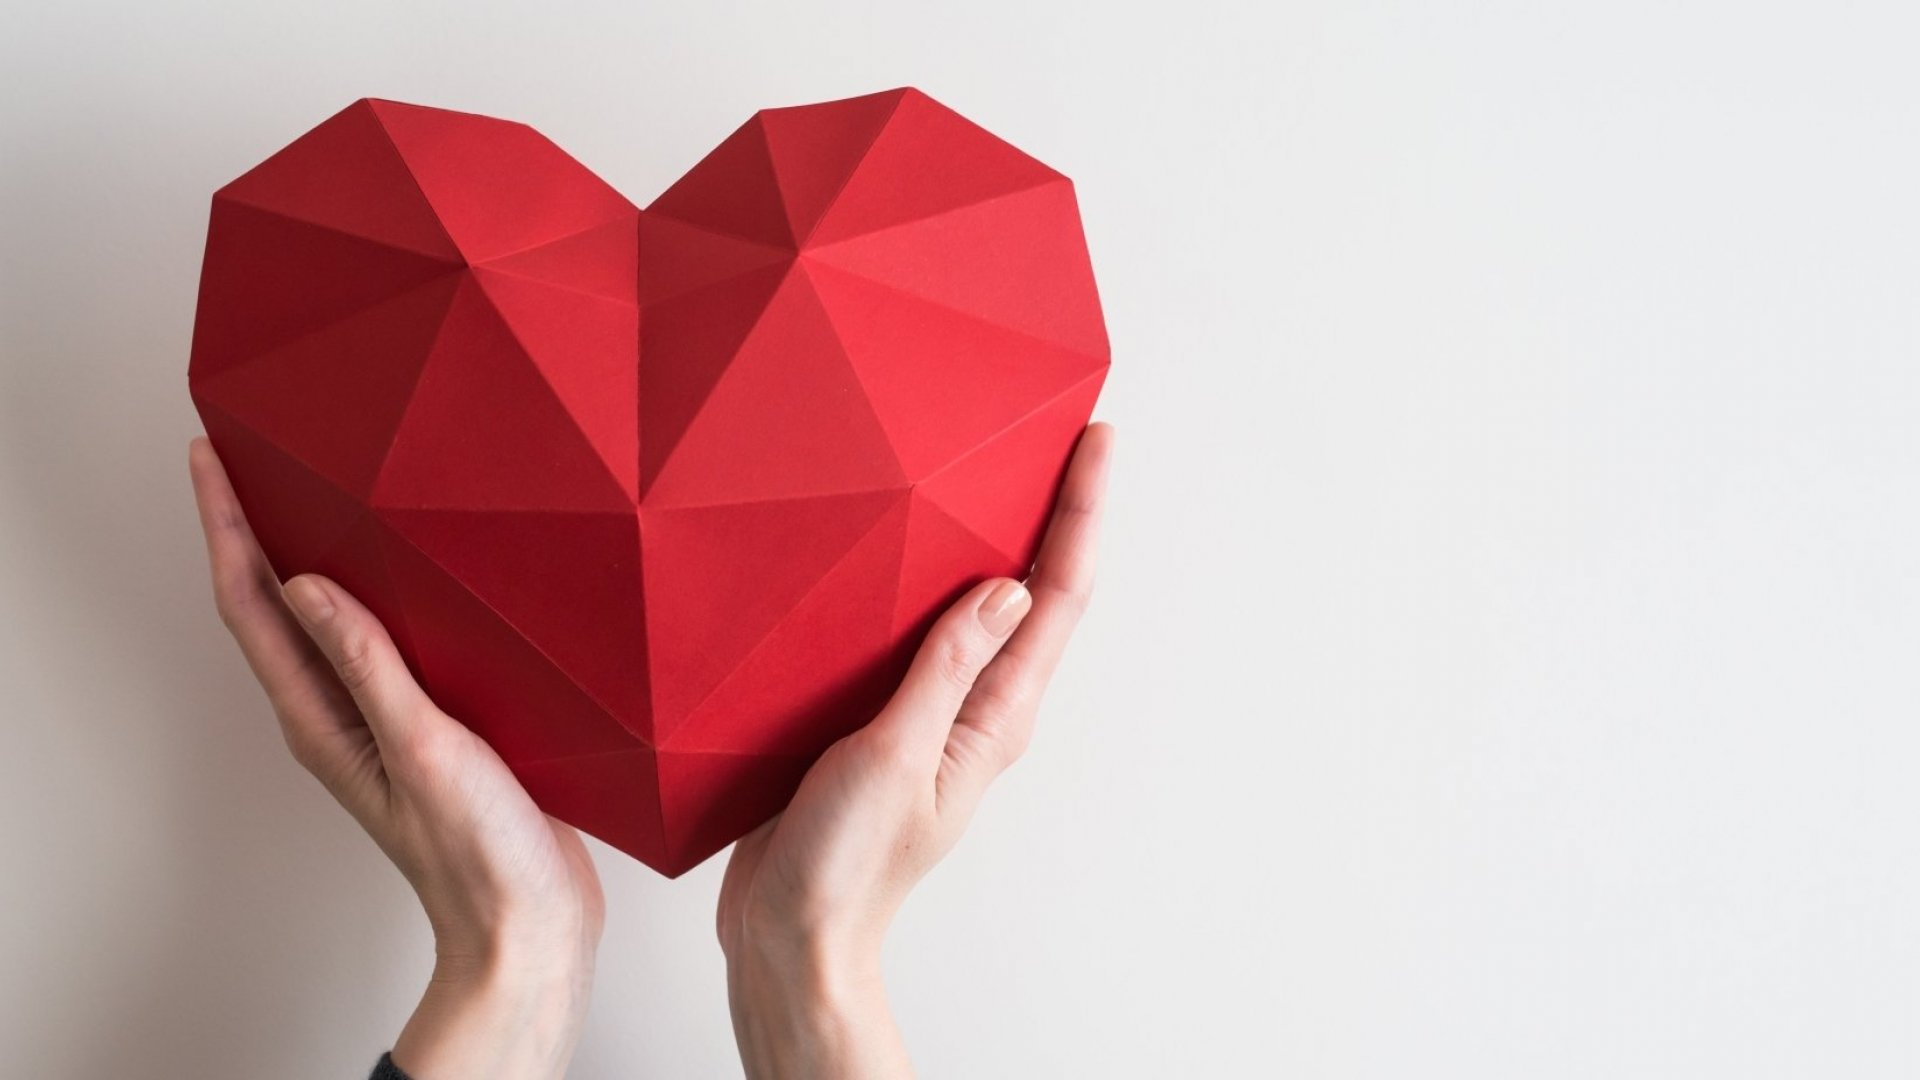 Want to Be a More Effective Leader? Follow the 5 Principles of 'HEART'